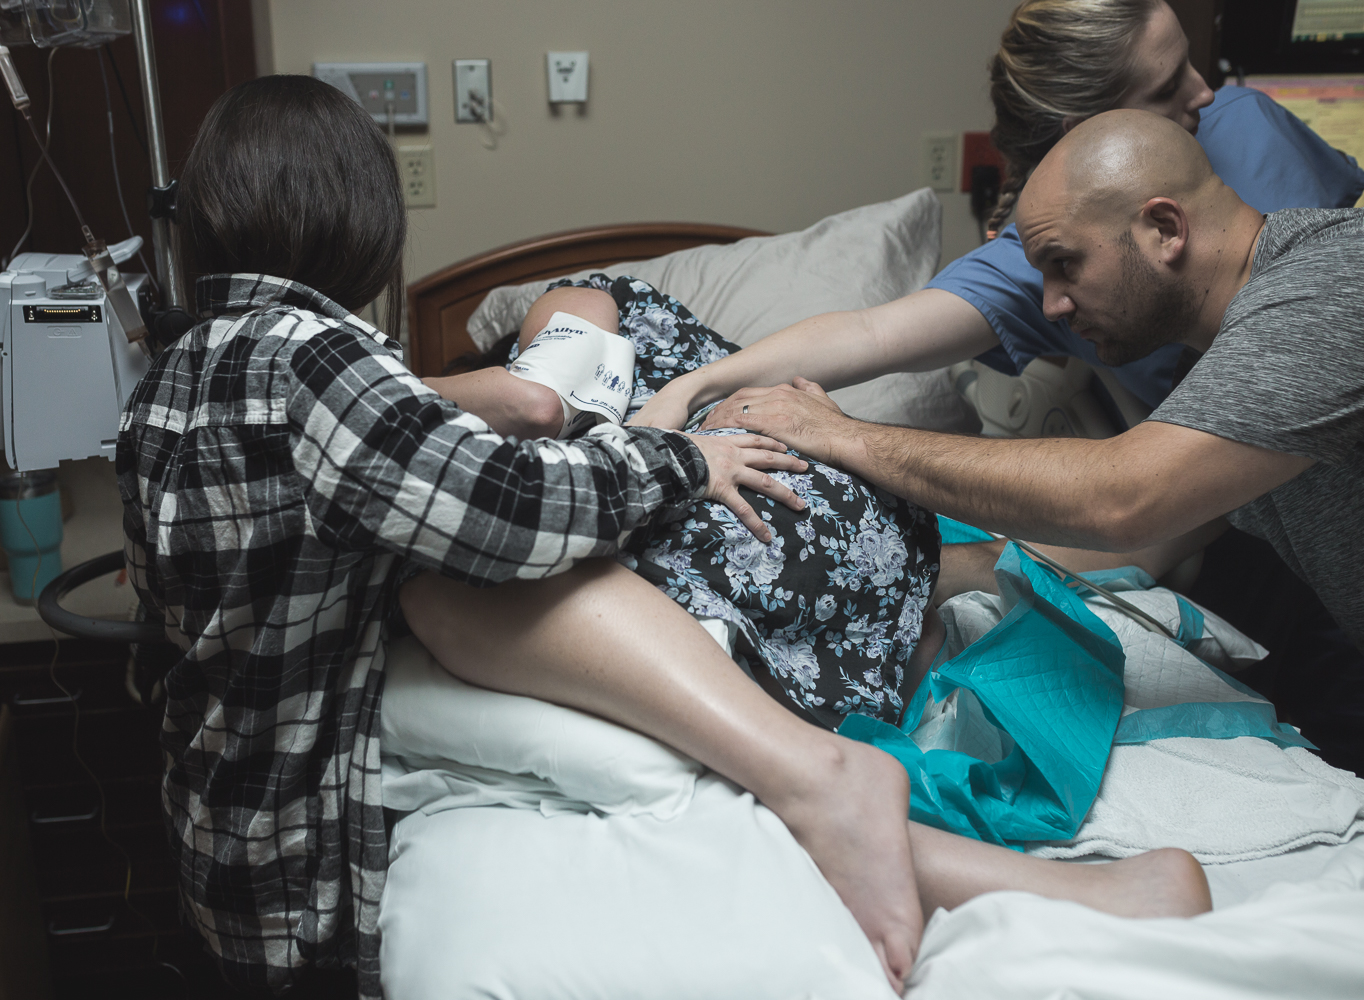 Oklahoma Doula Anna Rhodes with First Embrace Birth Services relieving mom of labor pains